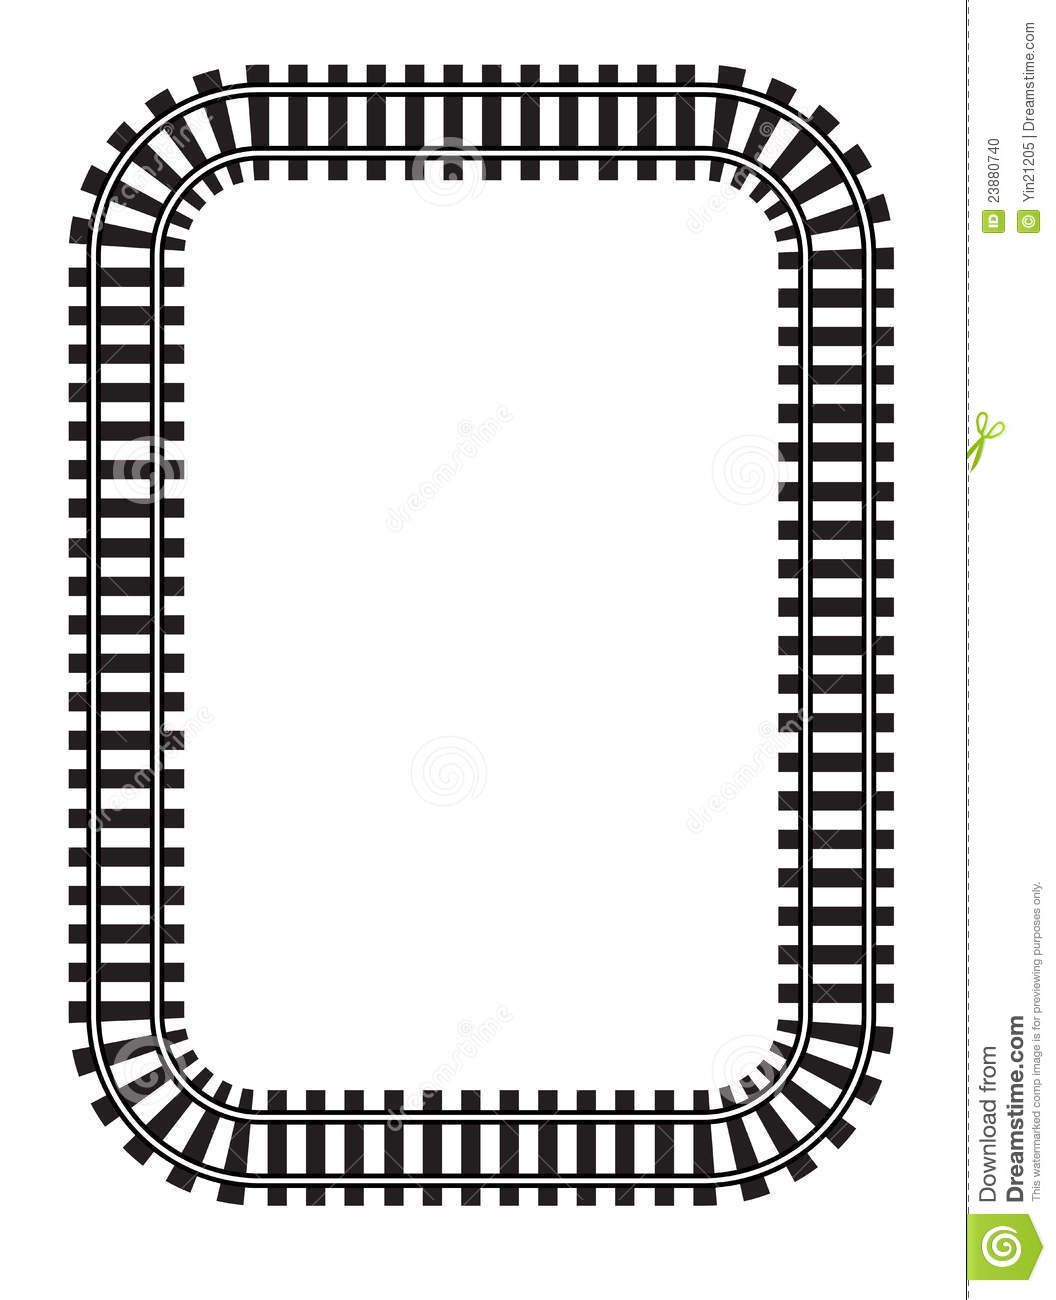 hight resolution of train track clipart google search